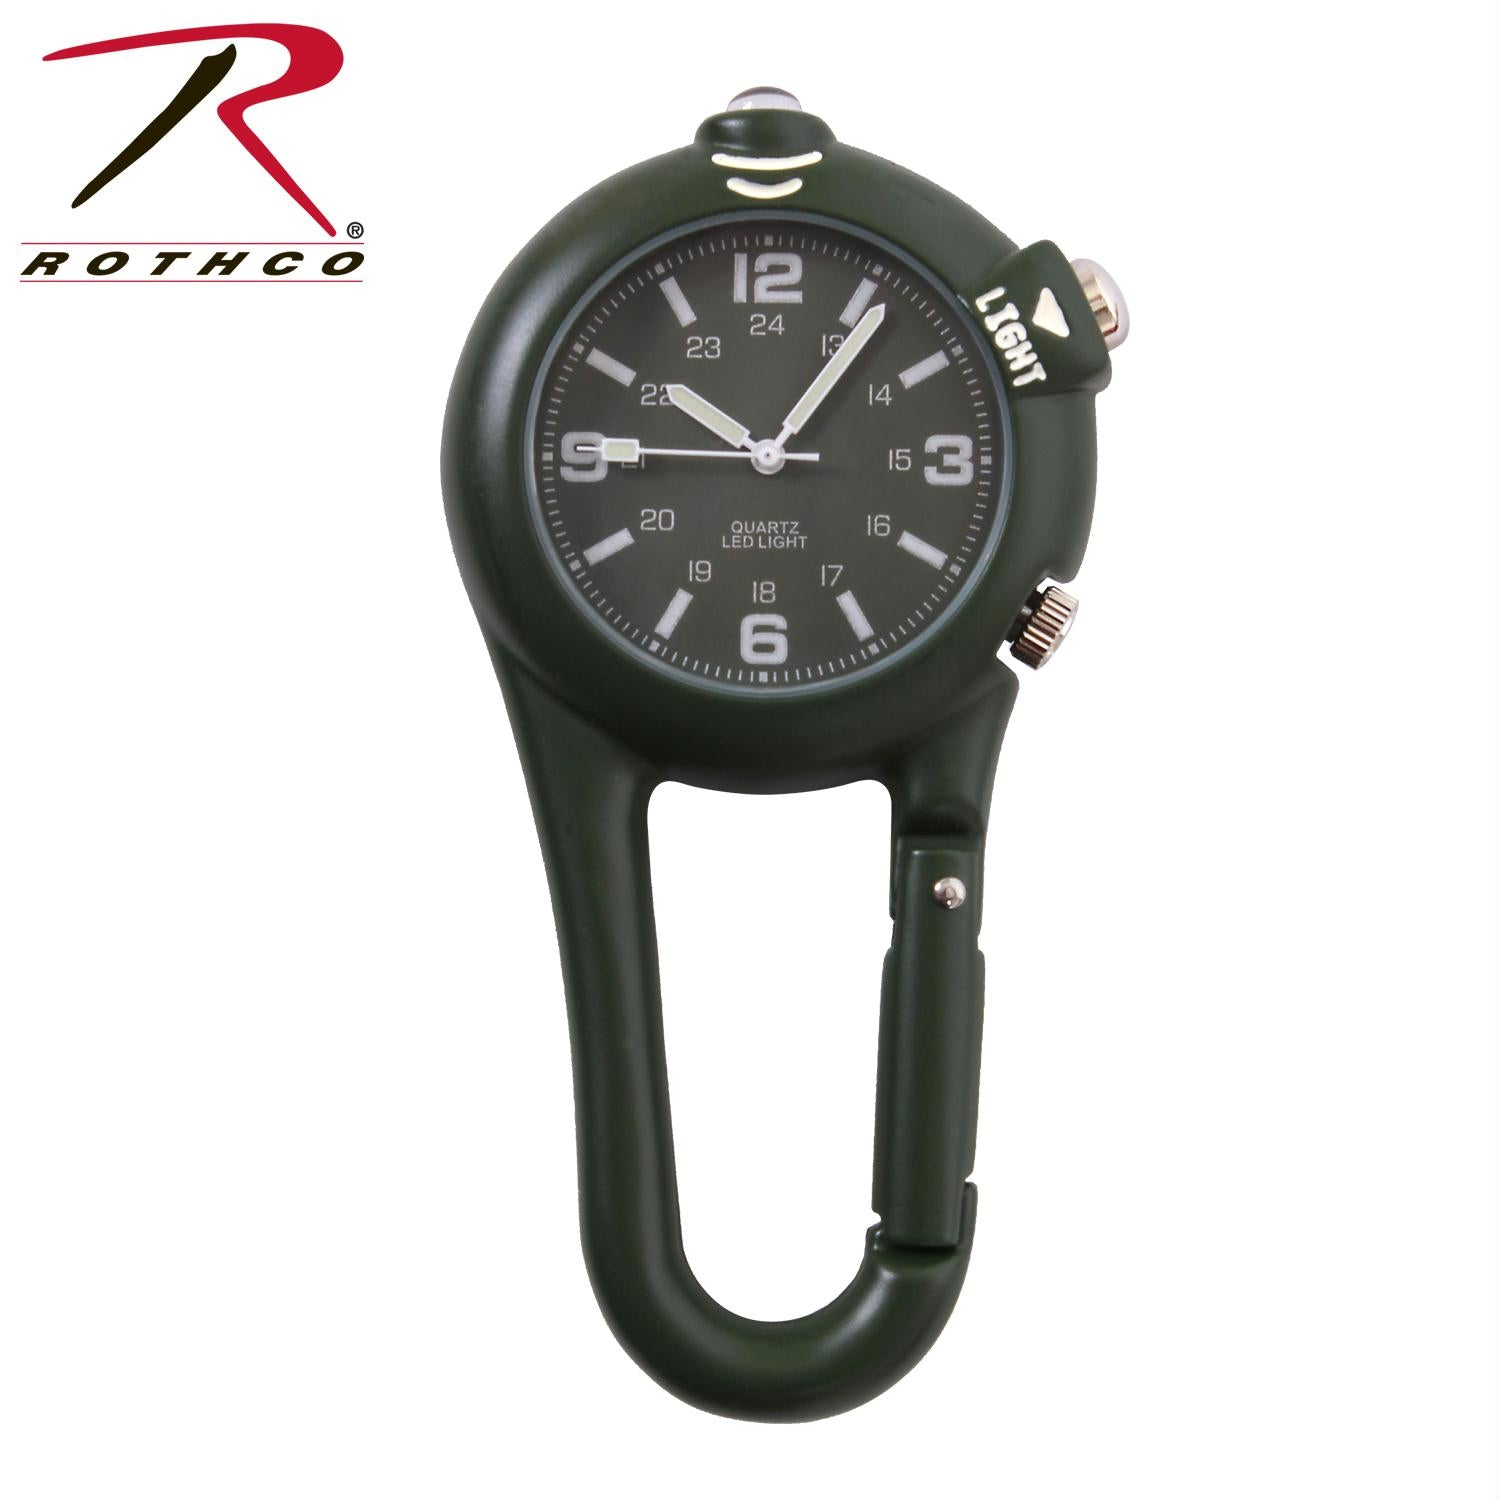 Rothco Clip Watch w/ LED Light - Olive Drab